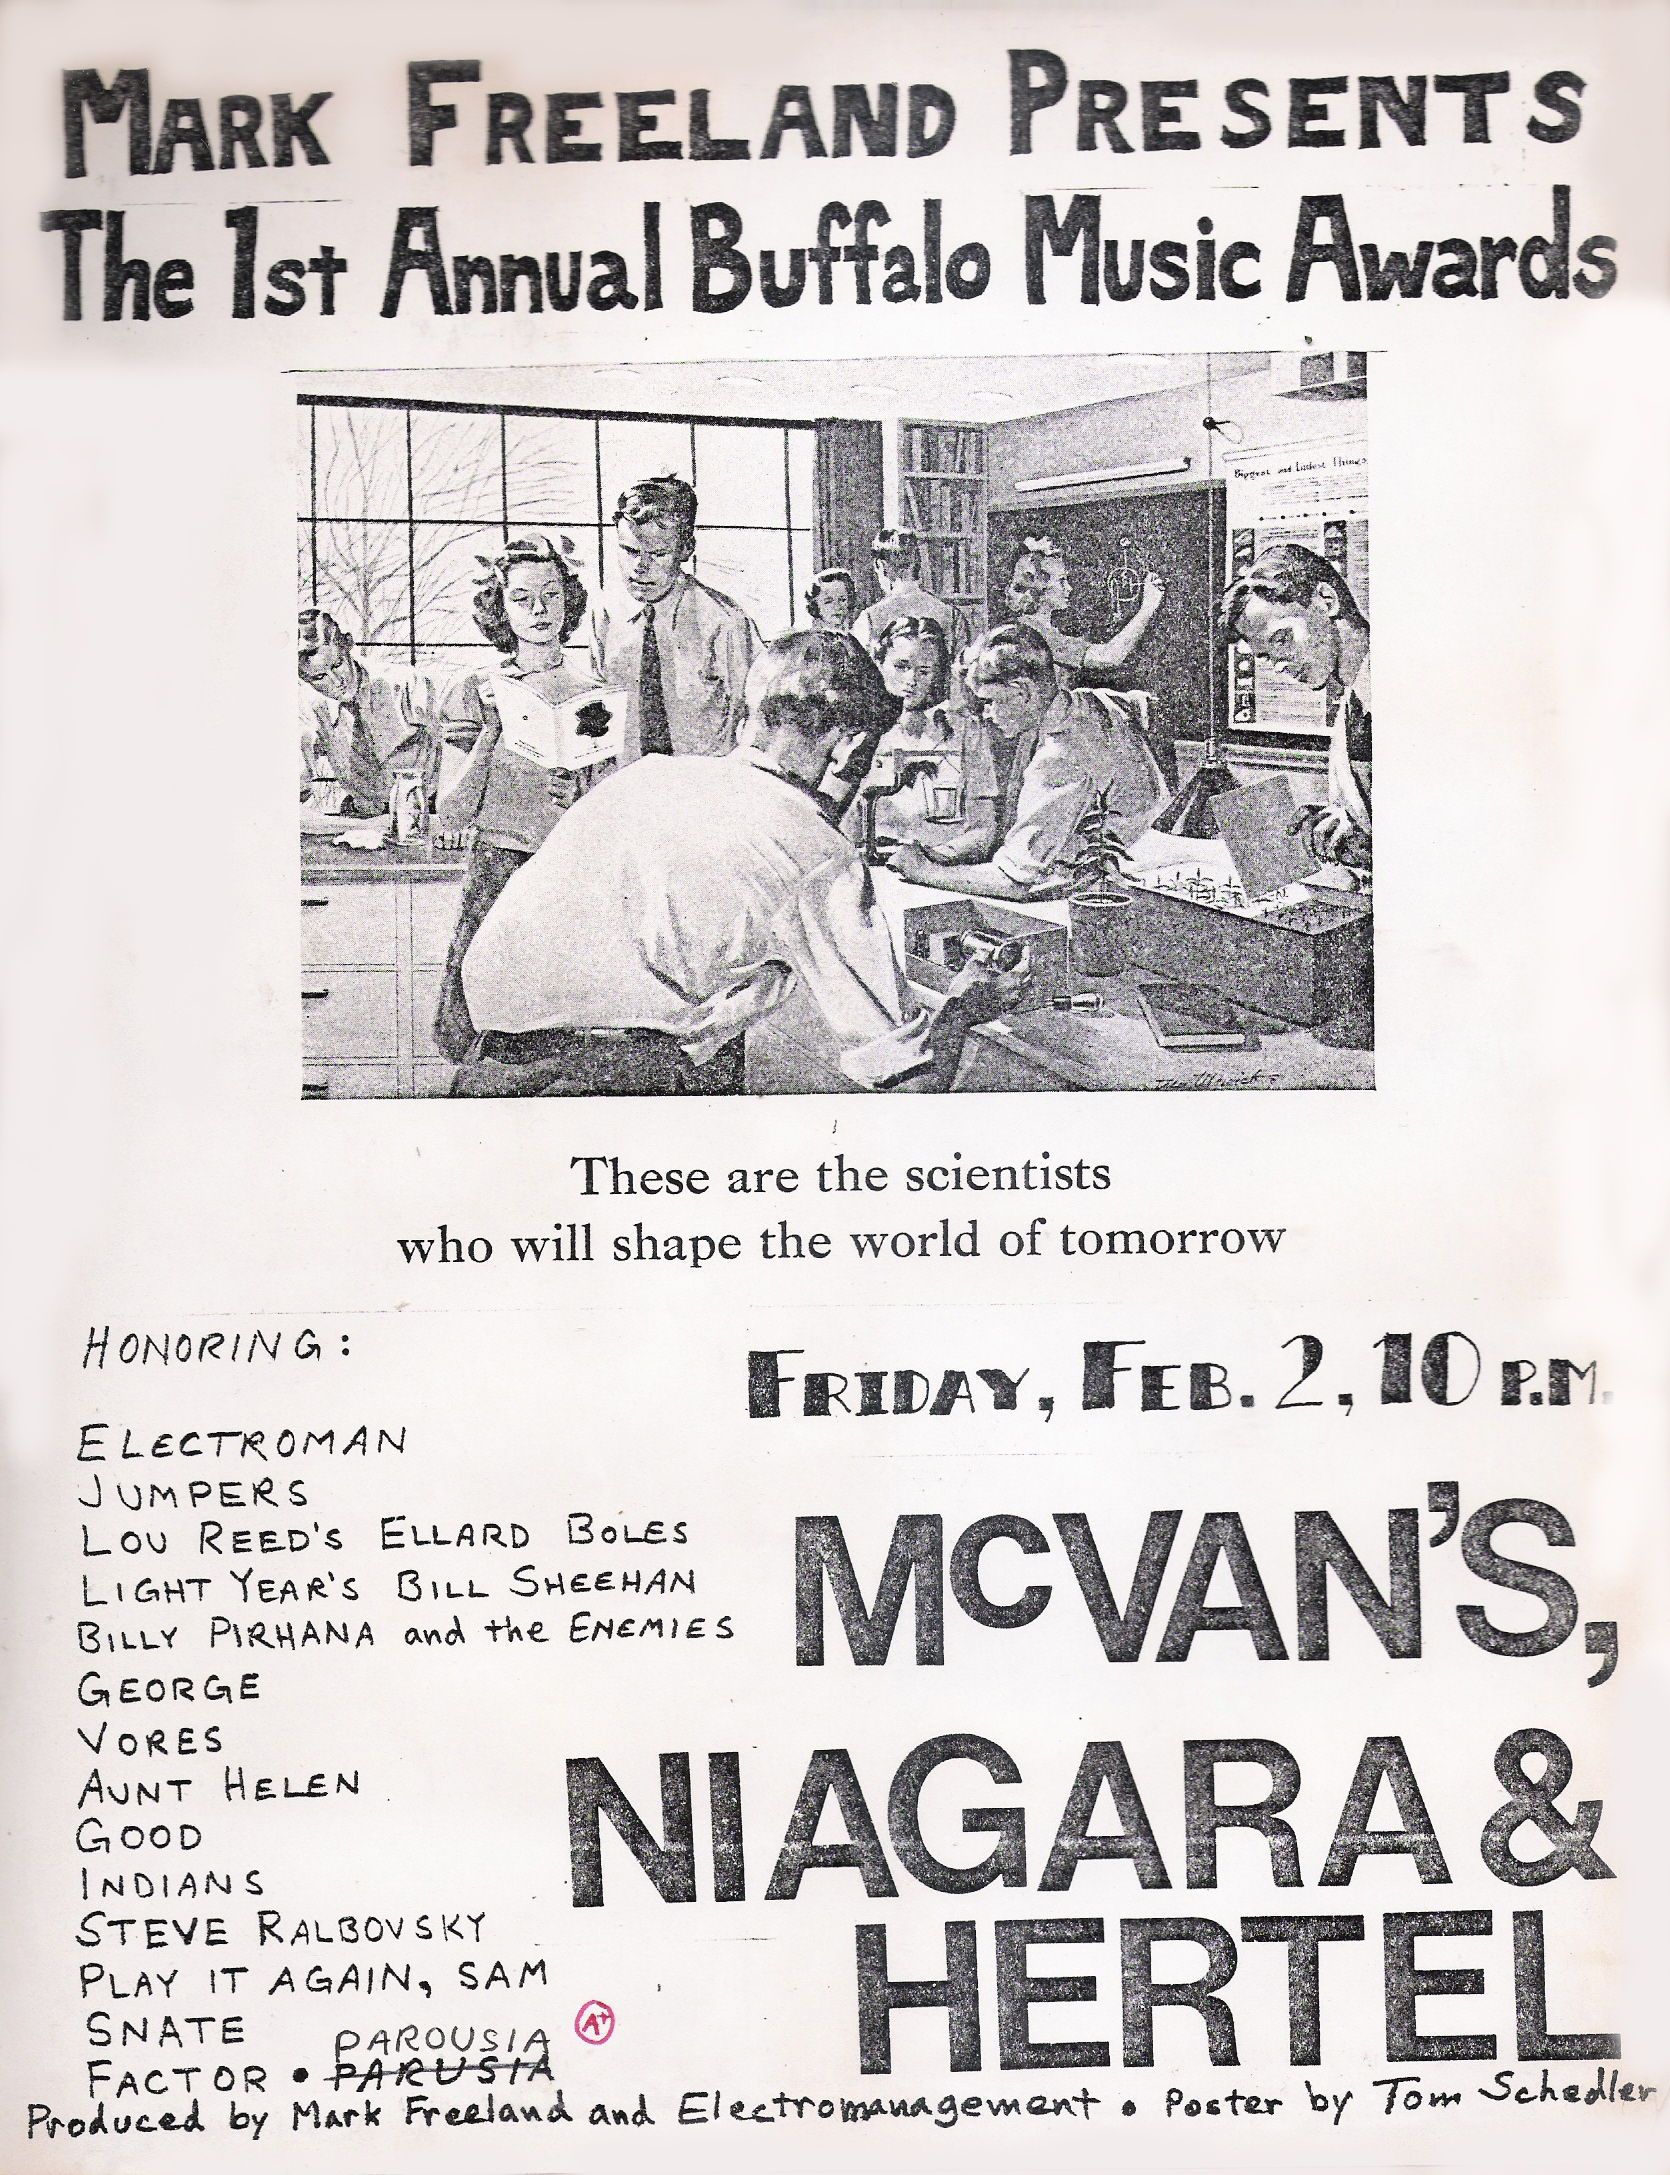 McVans 02.02.79 1st annual Buffalo Music Awards by Mark Freeland